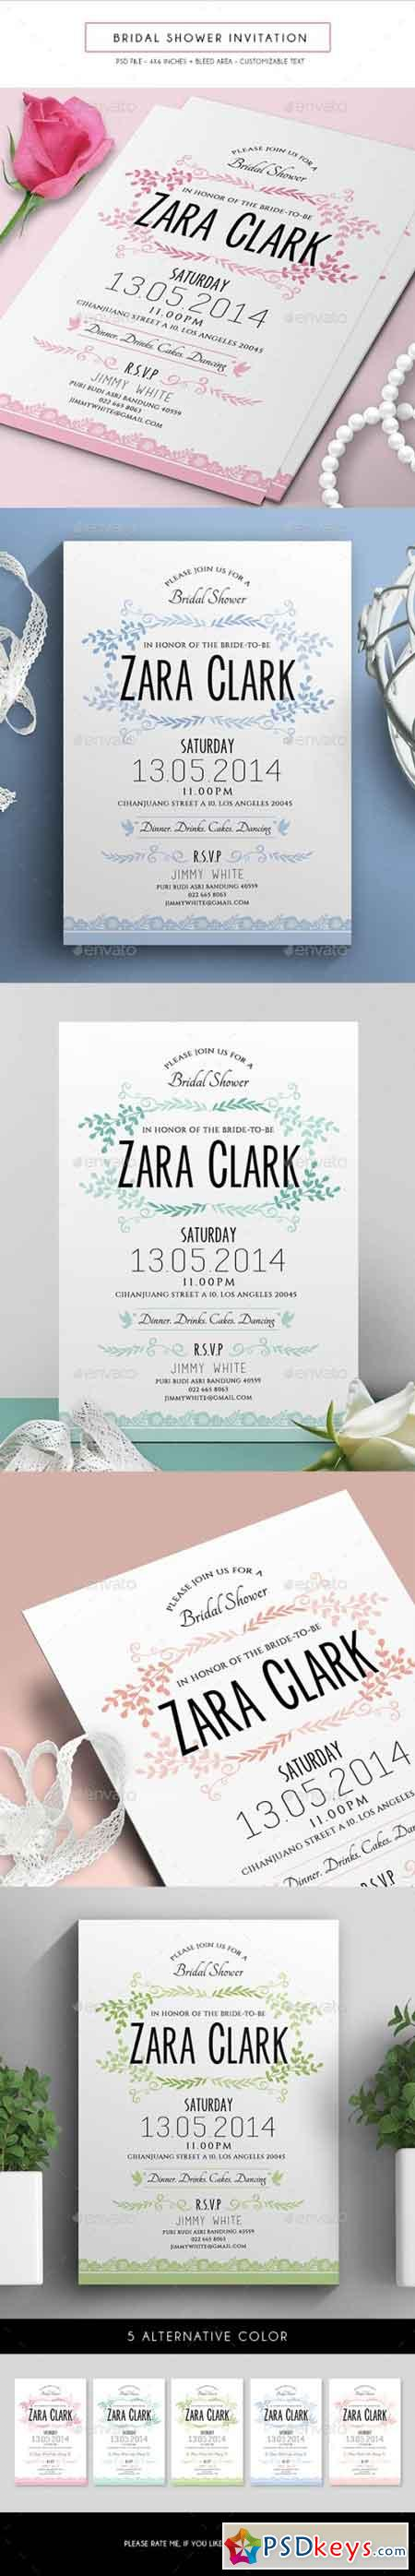 Bridal Shower Invitation 16479847